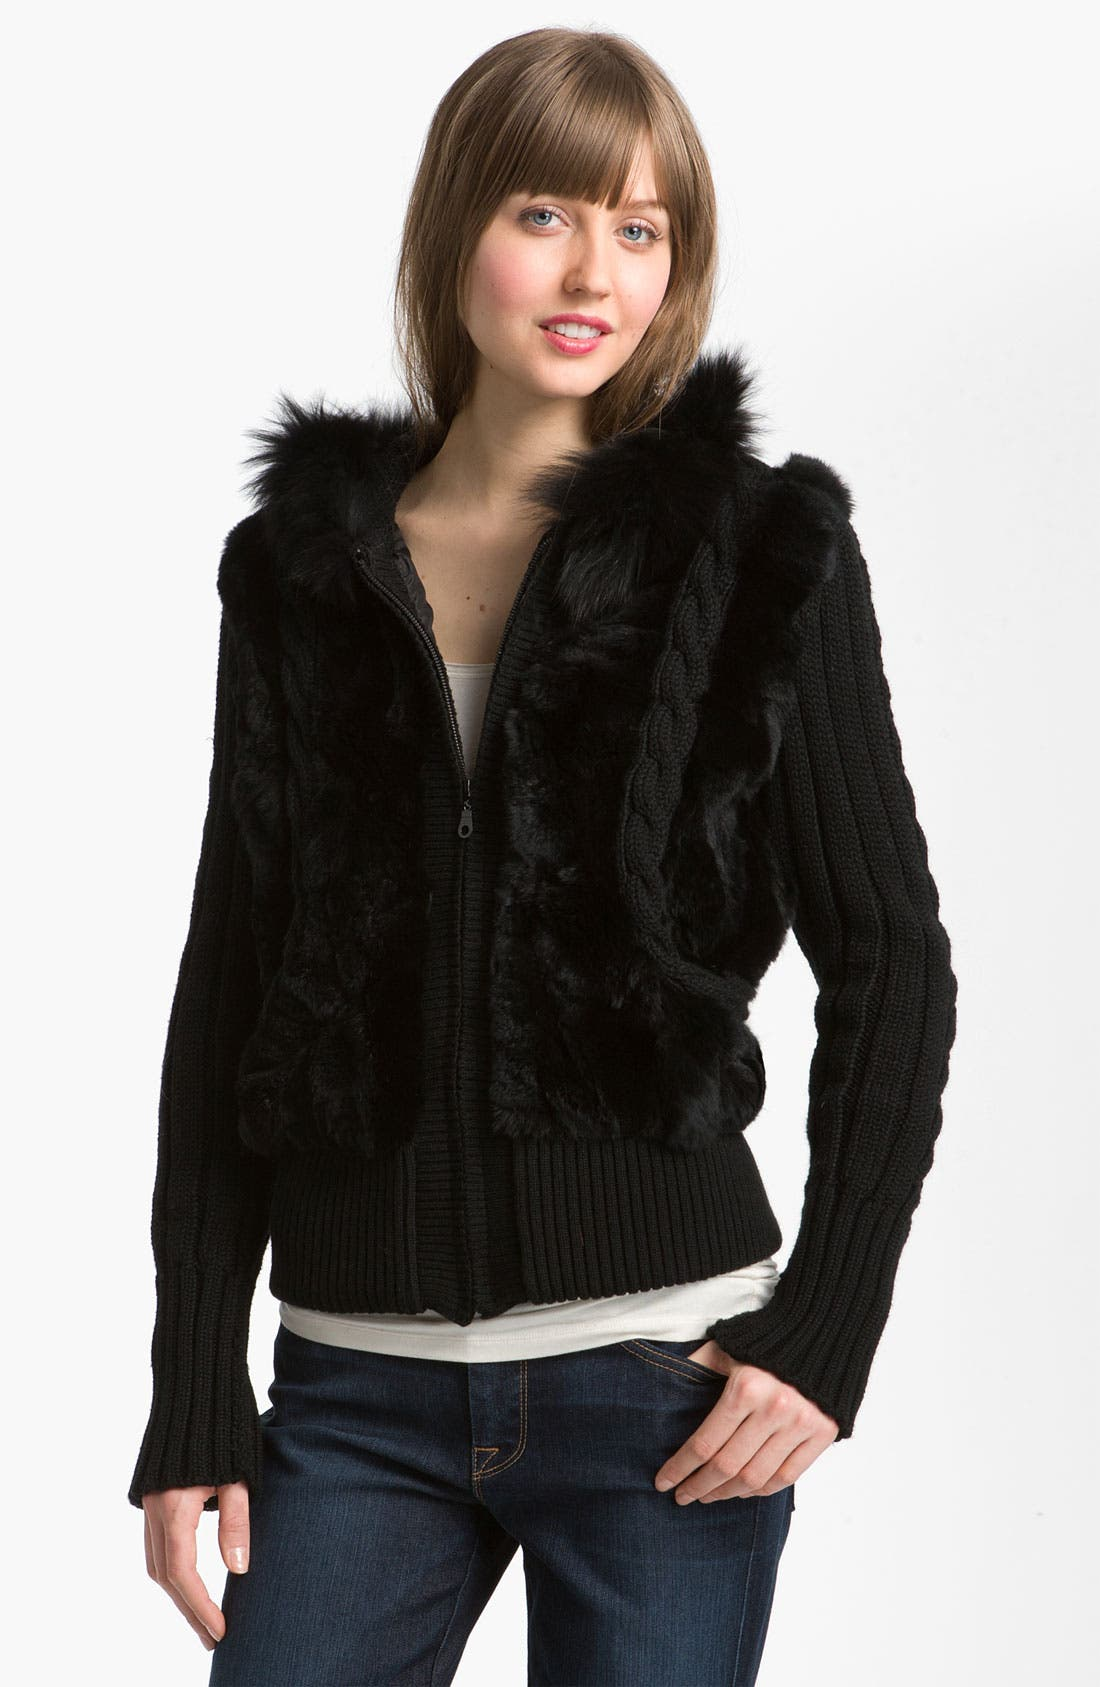 Main Image - Laundry by Shelli Segal Genuine Fur Trim Hooded Knit Jacket